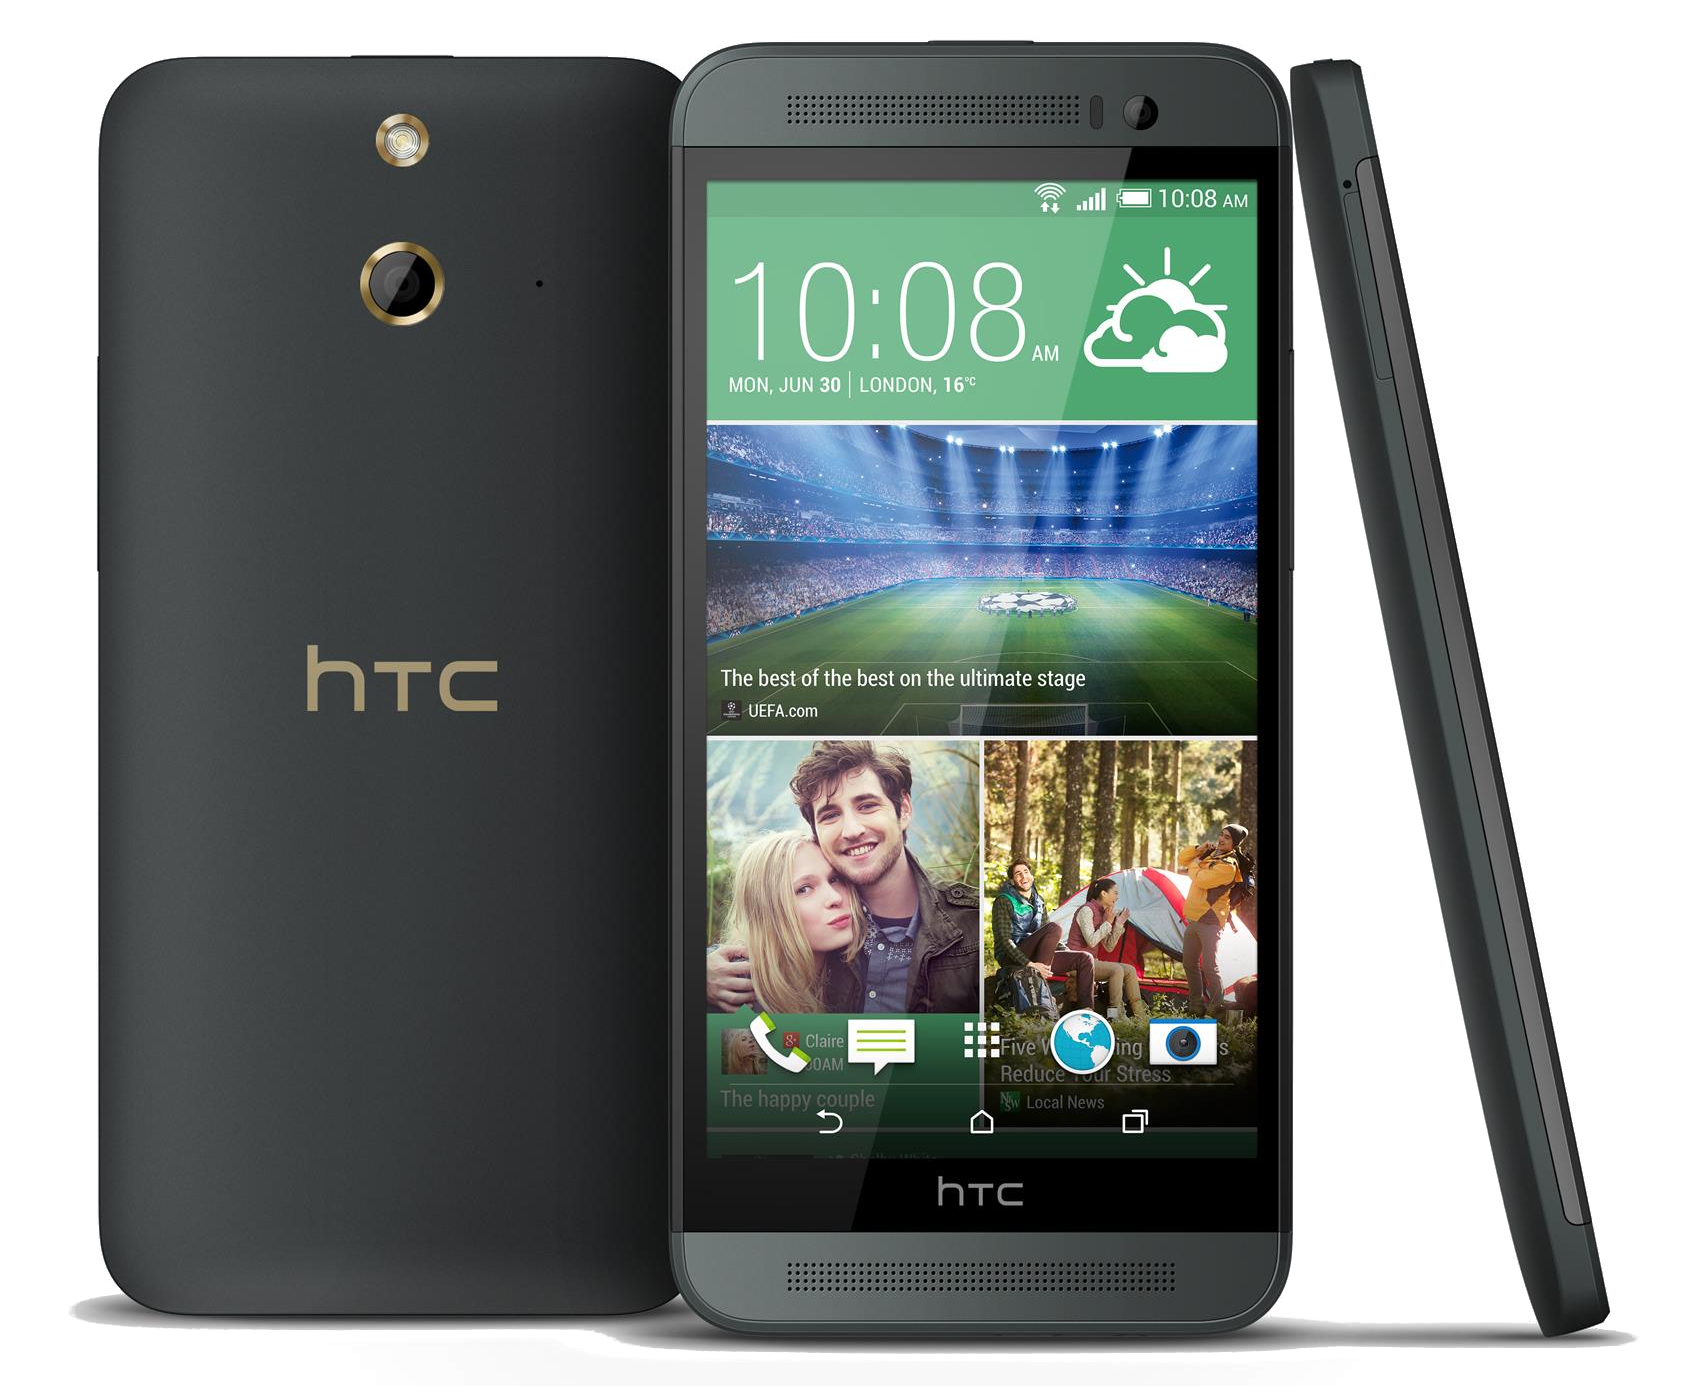 Phone Android Phone Used htc one e8 16gb 4g lte android phone in misty gray for sprint pcs pcs